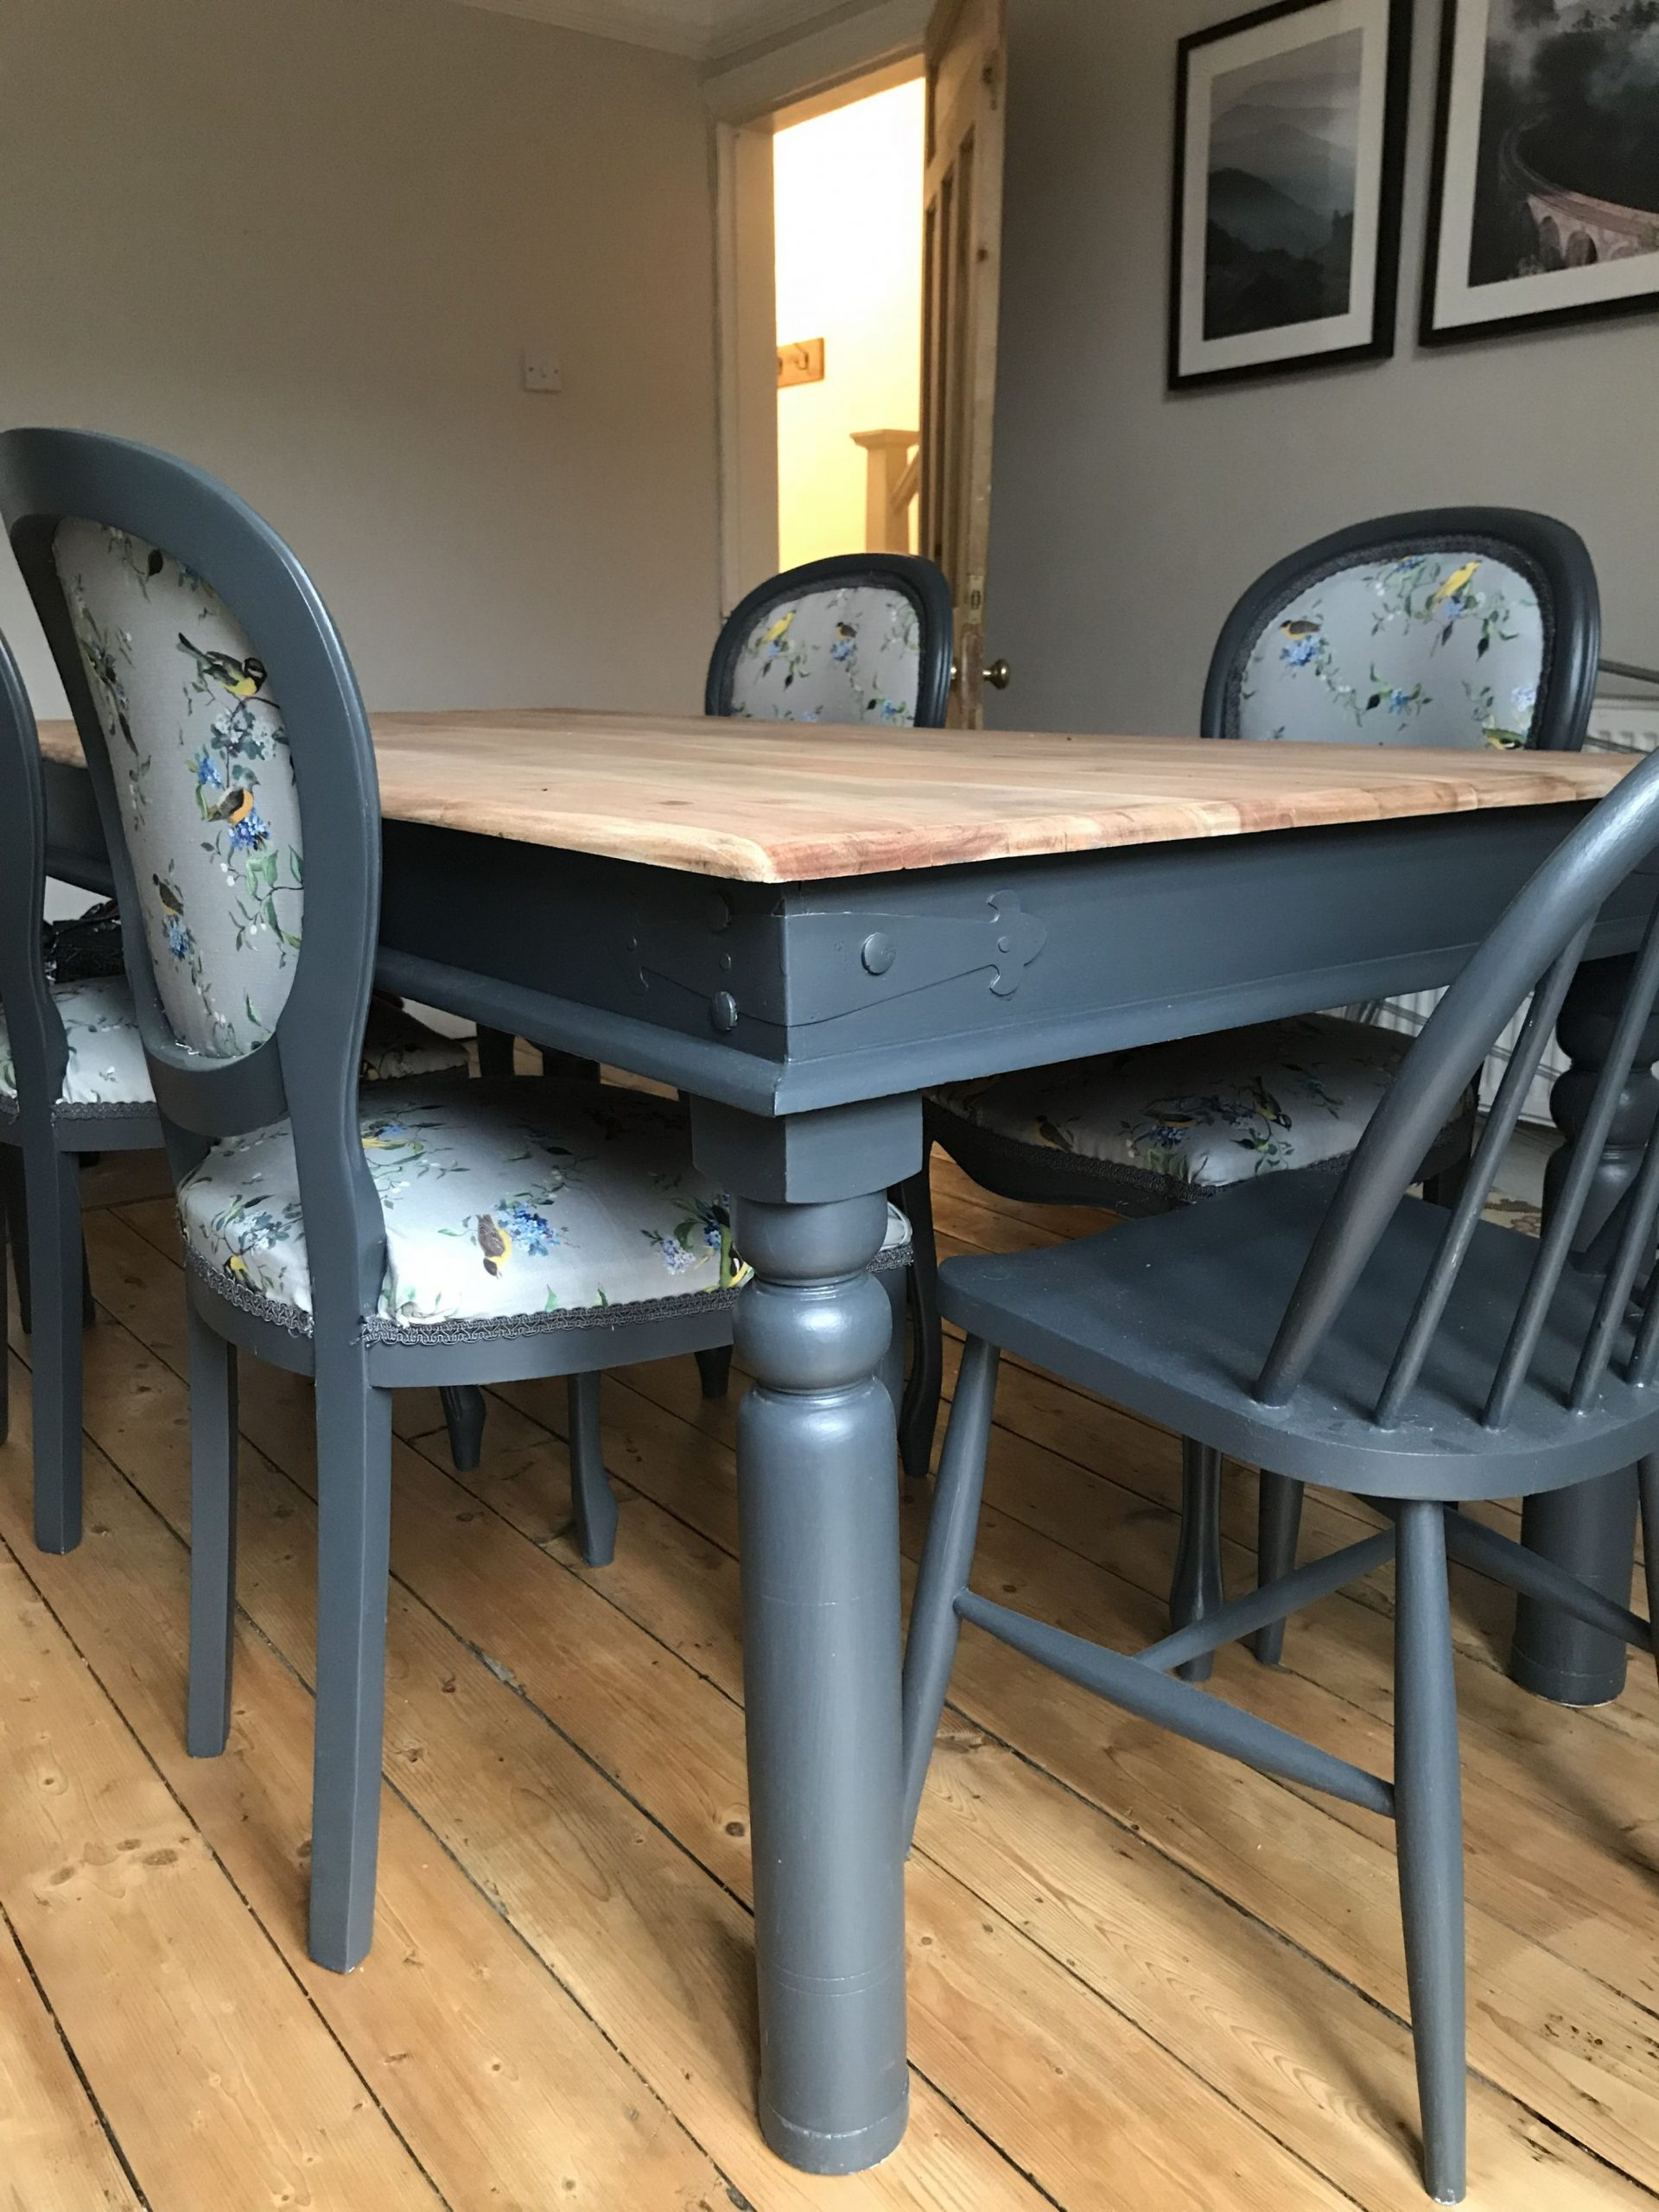 Pin on Renovating Our Edwardian Terrace - Dining Room Upcycle Ideas